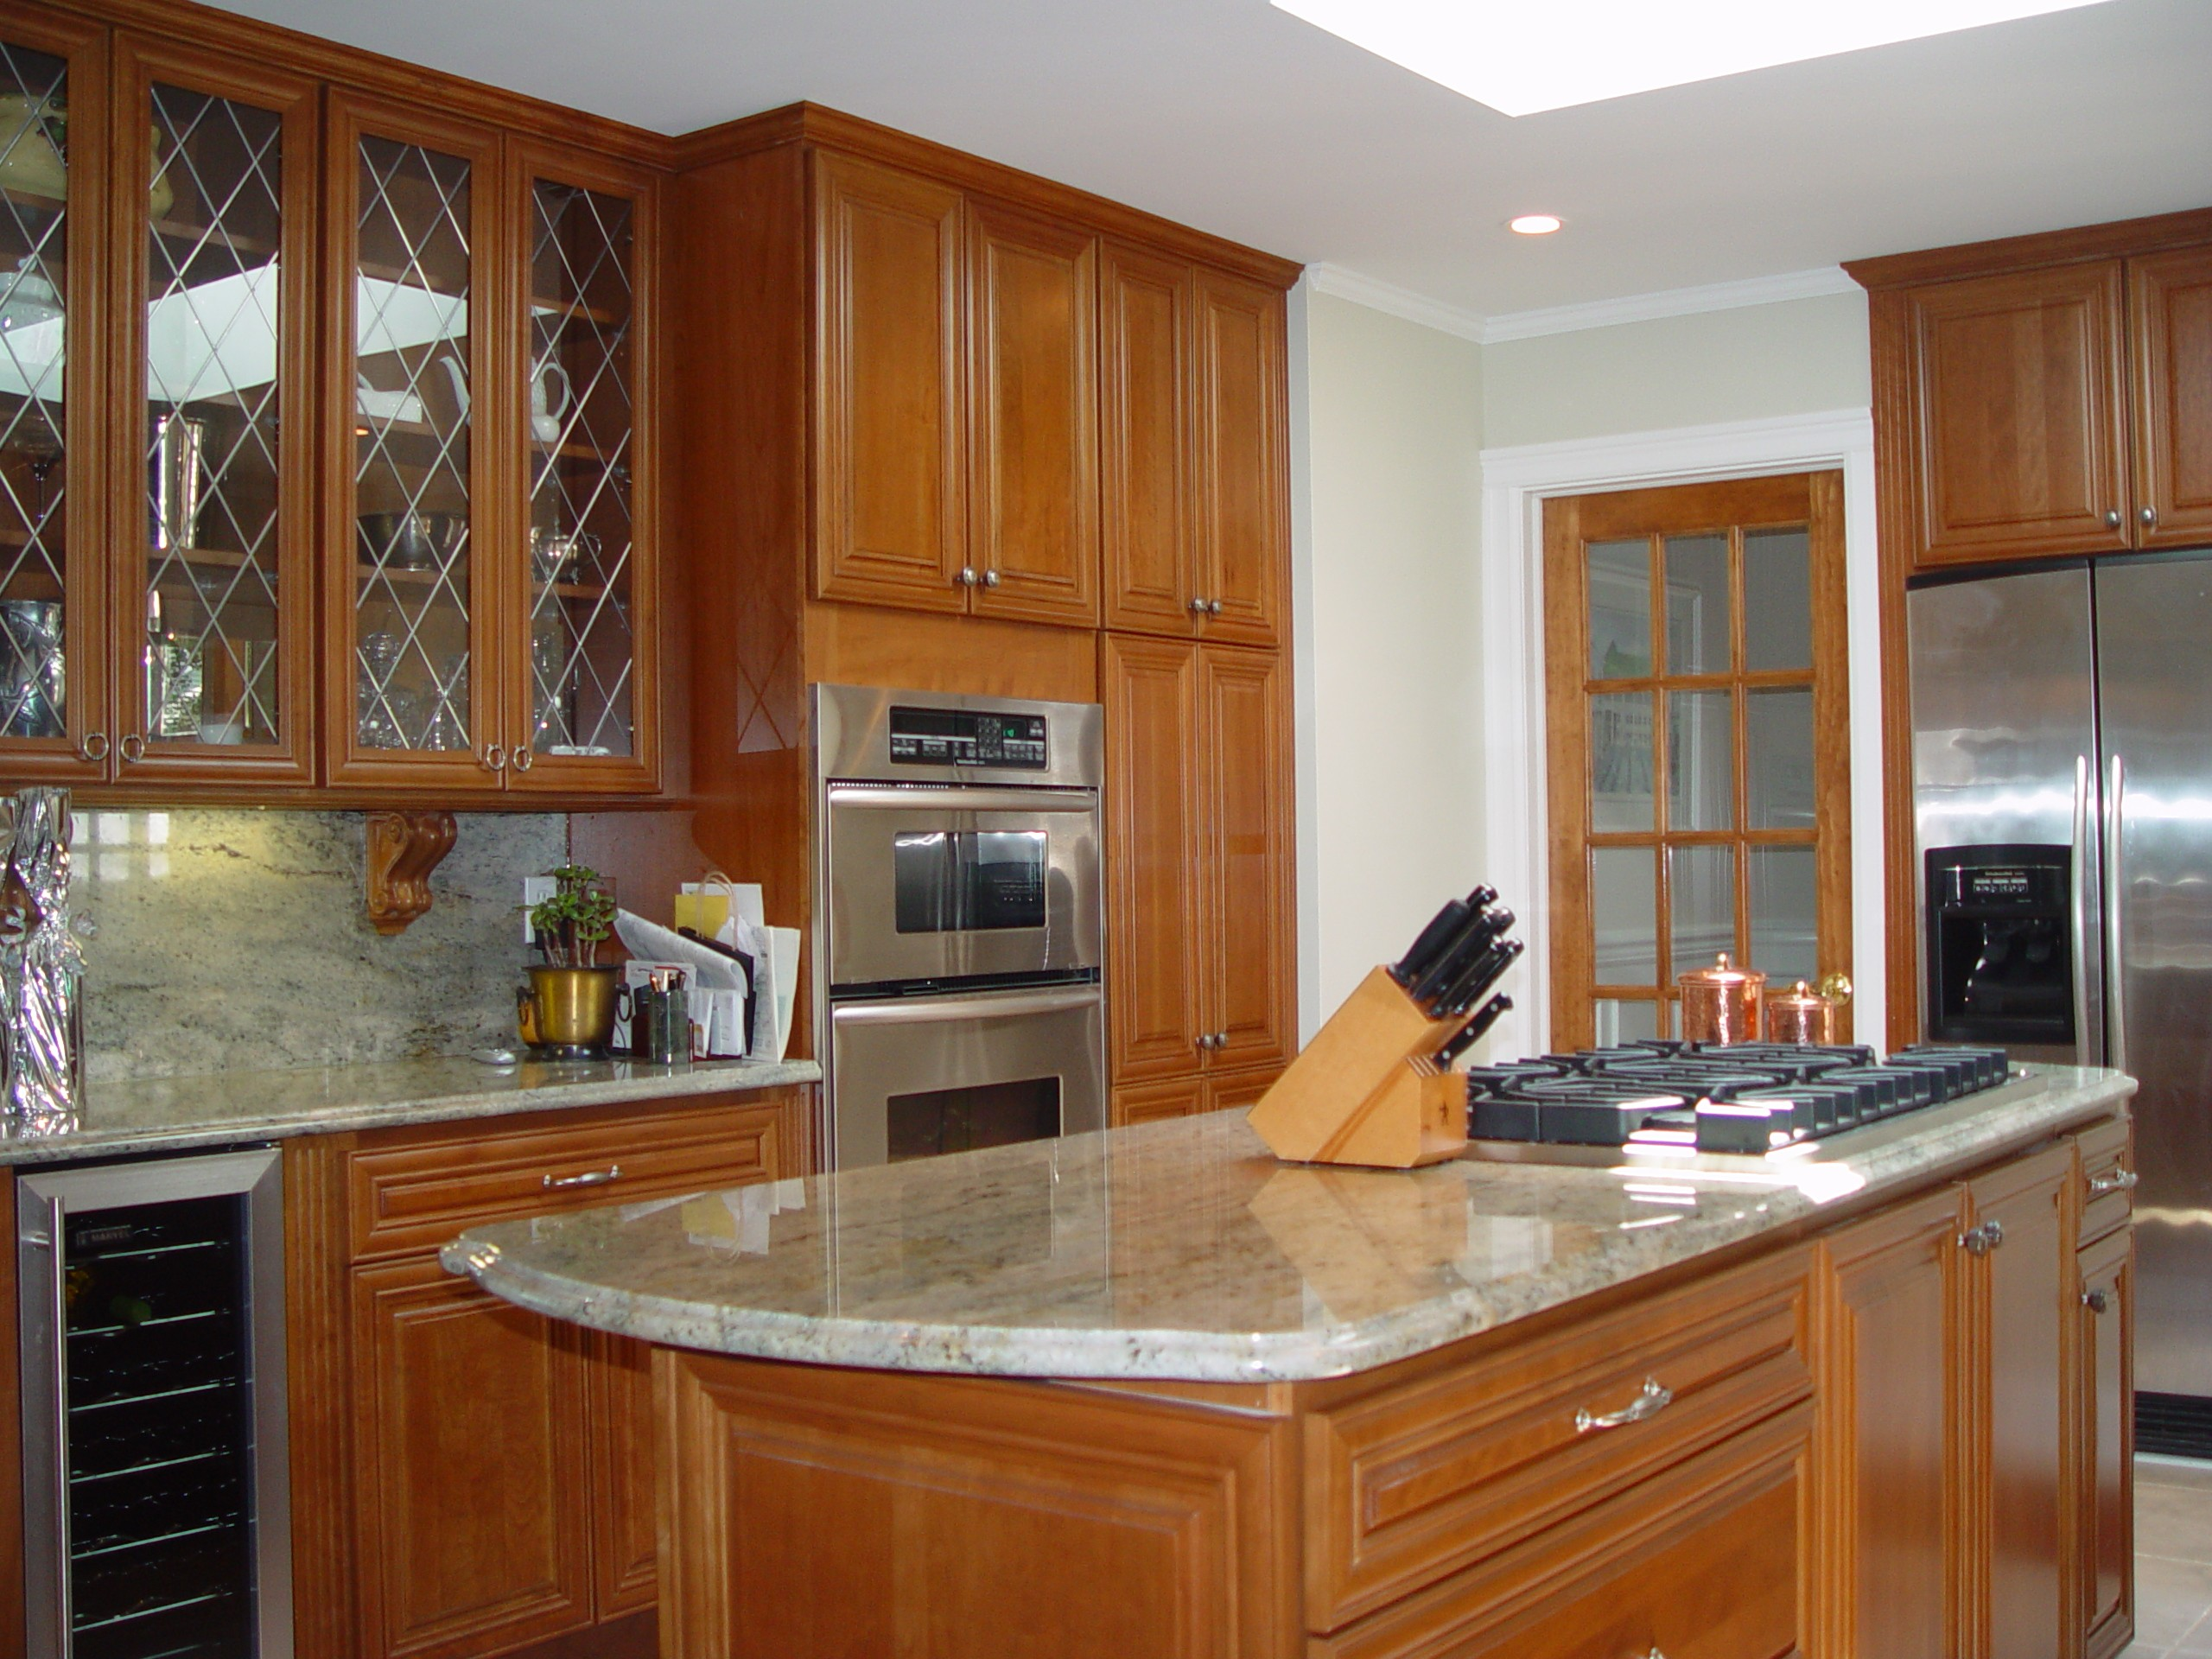 Nj pricing guide for your next monmouth county kitchen remodel for Modern kitchen cabinets nj